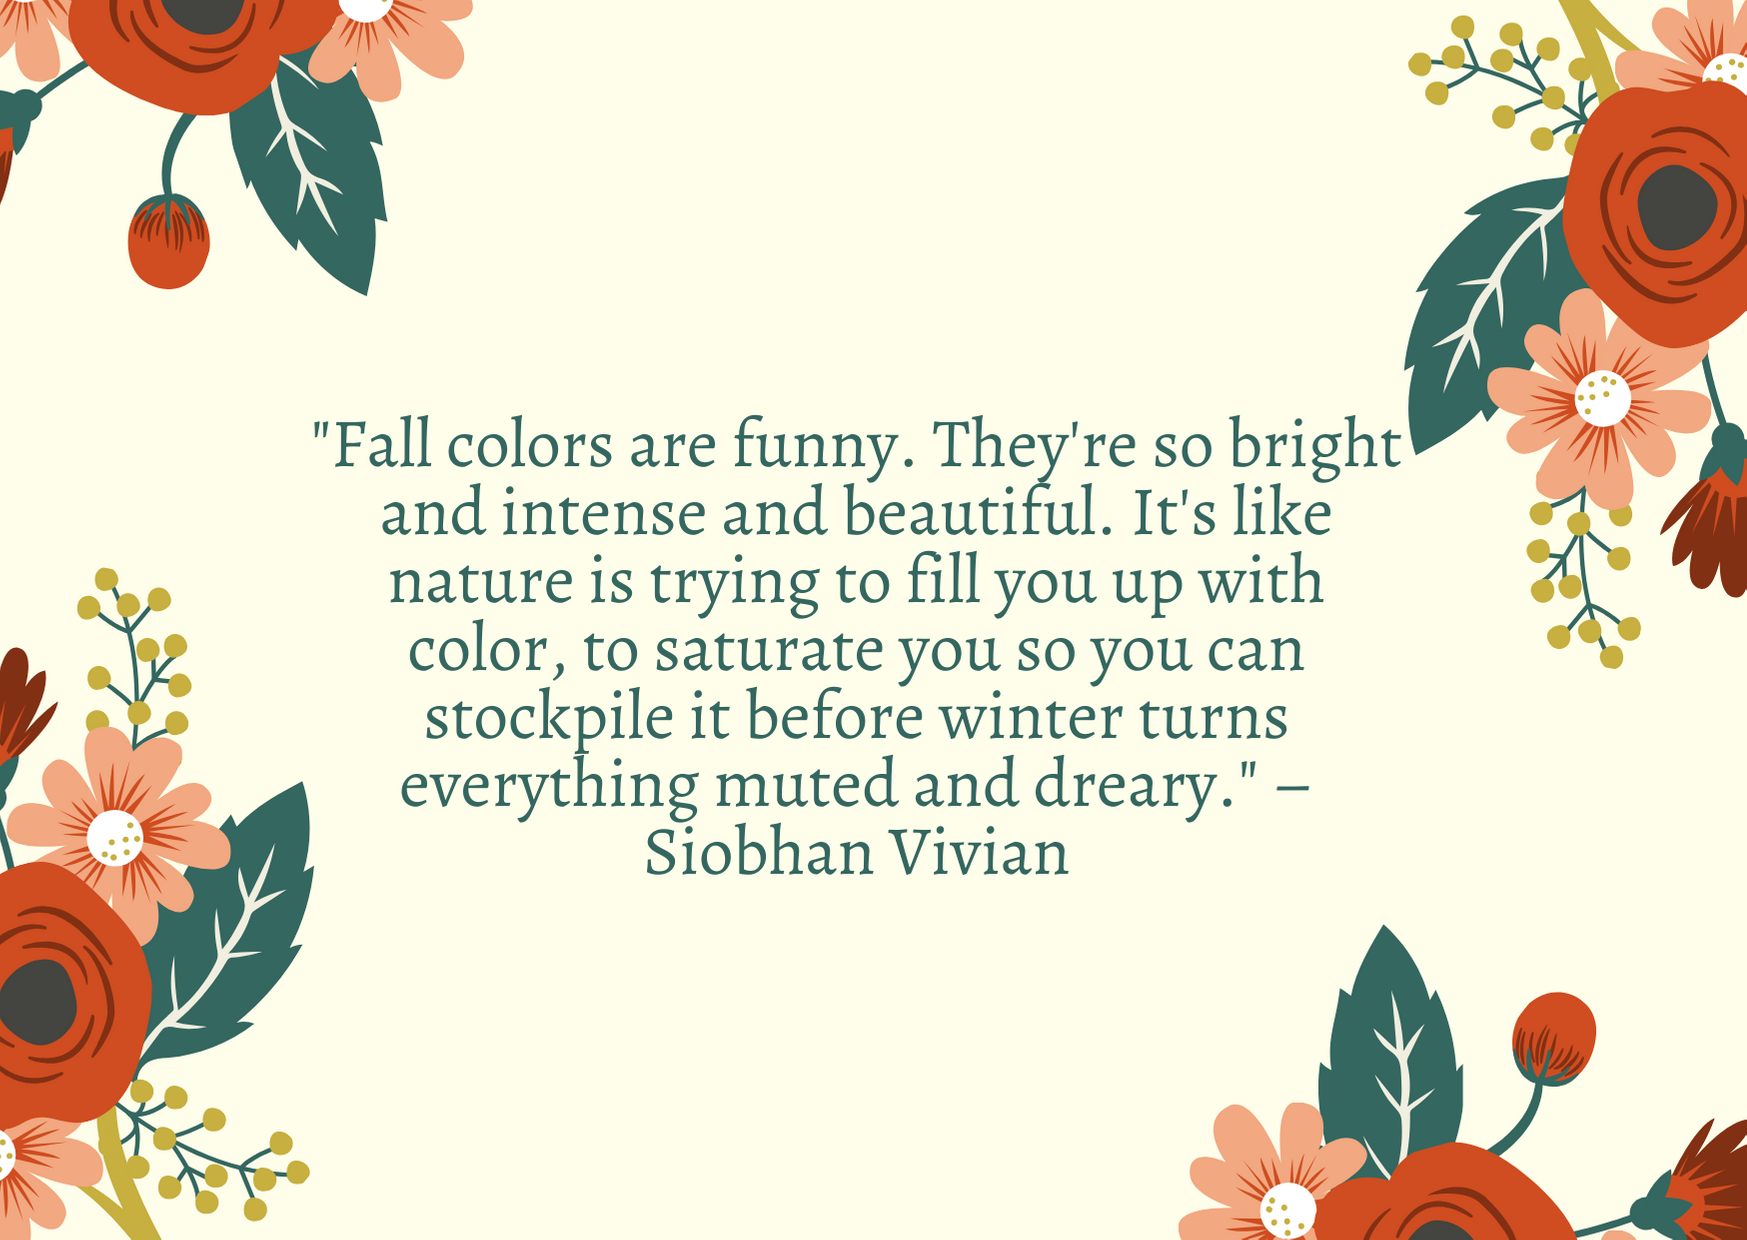 """Fall colors are funny. They're so bright and intense and beautiful. It's like nature is trying to fill you up with color, to saturate you so you can stockpile it before winter turns everything muted and dreary."" – Siobhan Vivian"